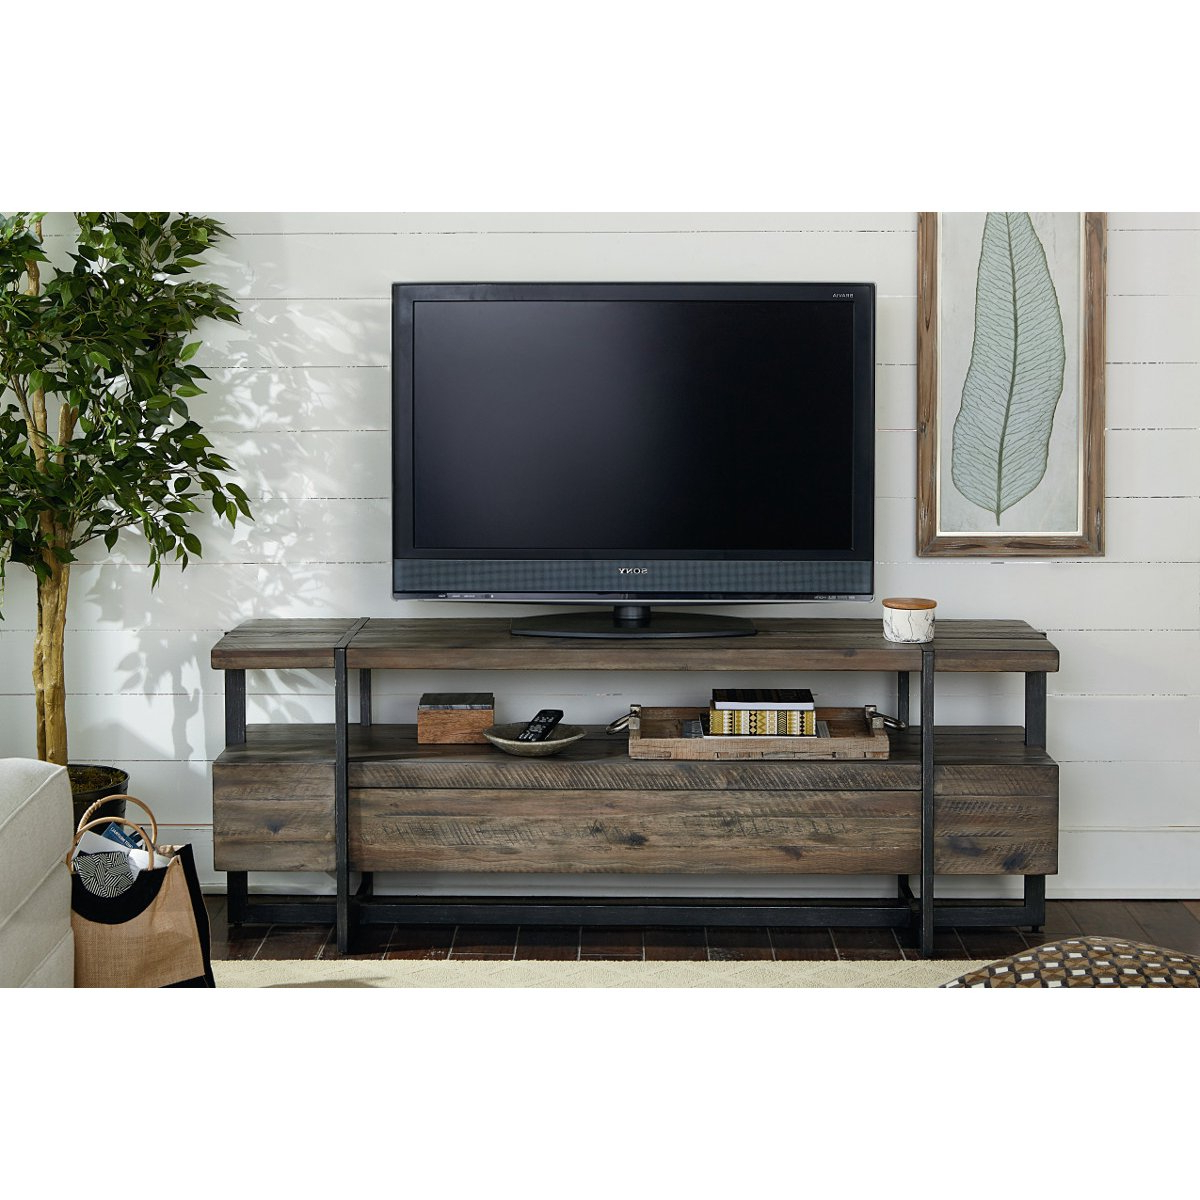 Ikea Hemnes Tv Stand 2 Drawer 70 Inch Stands 80 Entertainment Center Within Latest 80 Inch Tv Stands (Gallery 20 of 20)